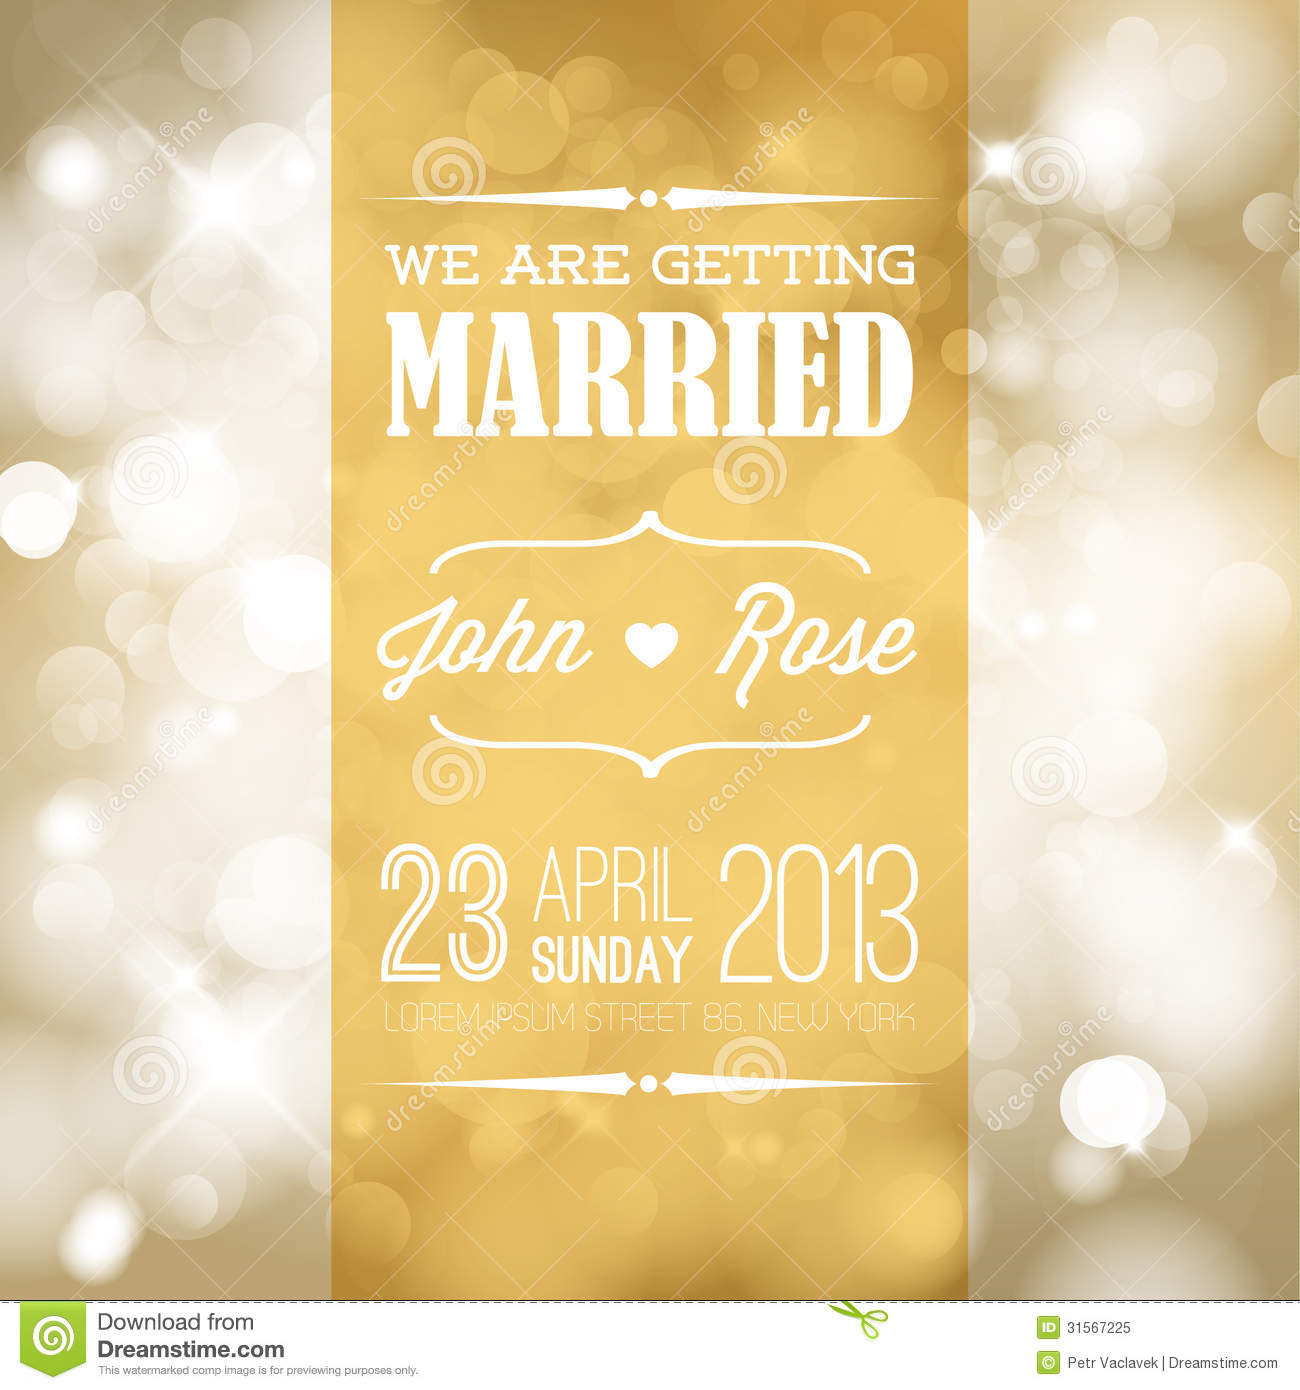 Vector Wedding invitation stock vector. Illustration of artwork ...